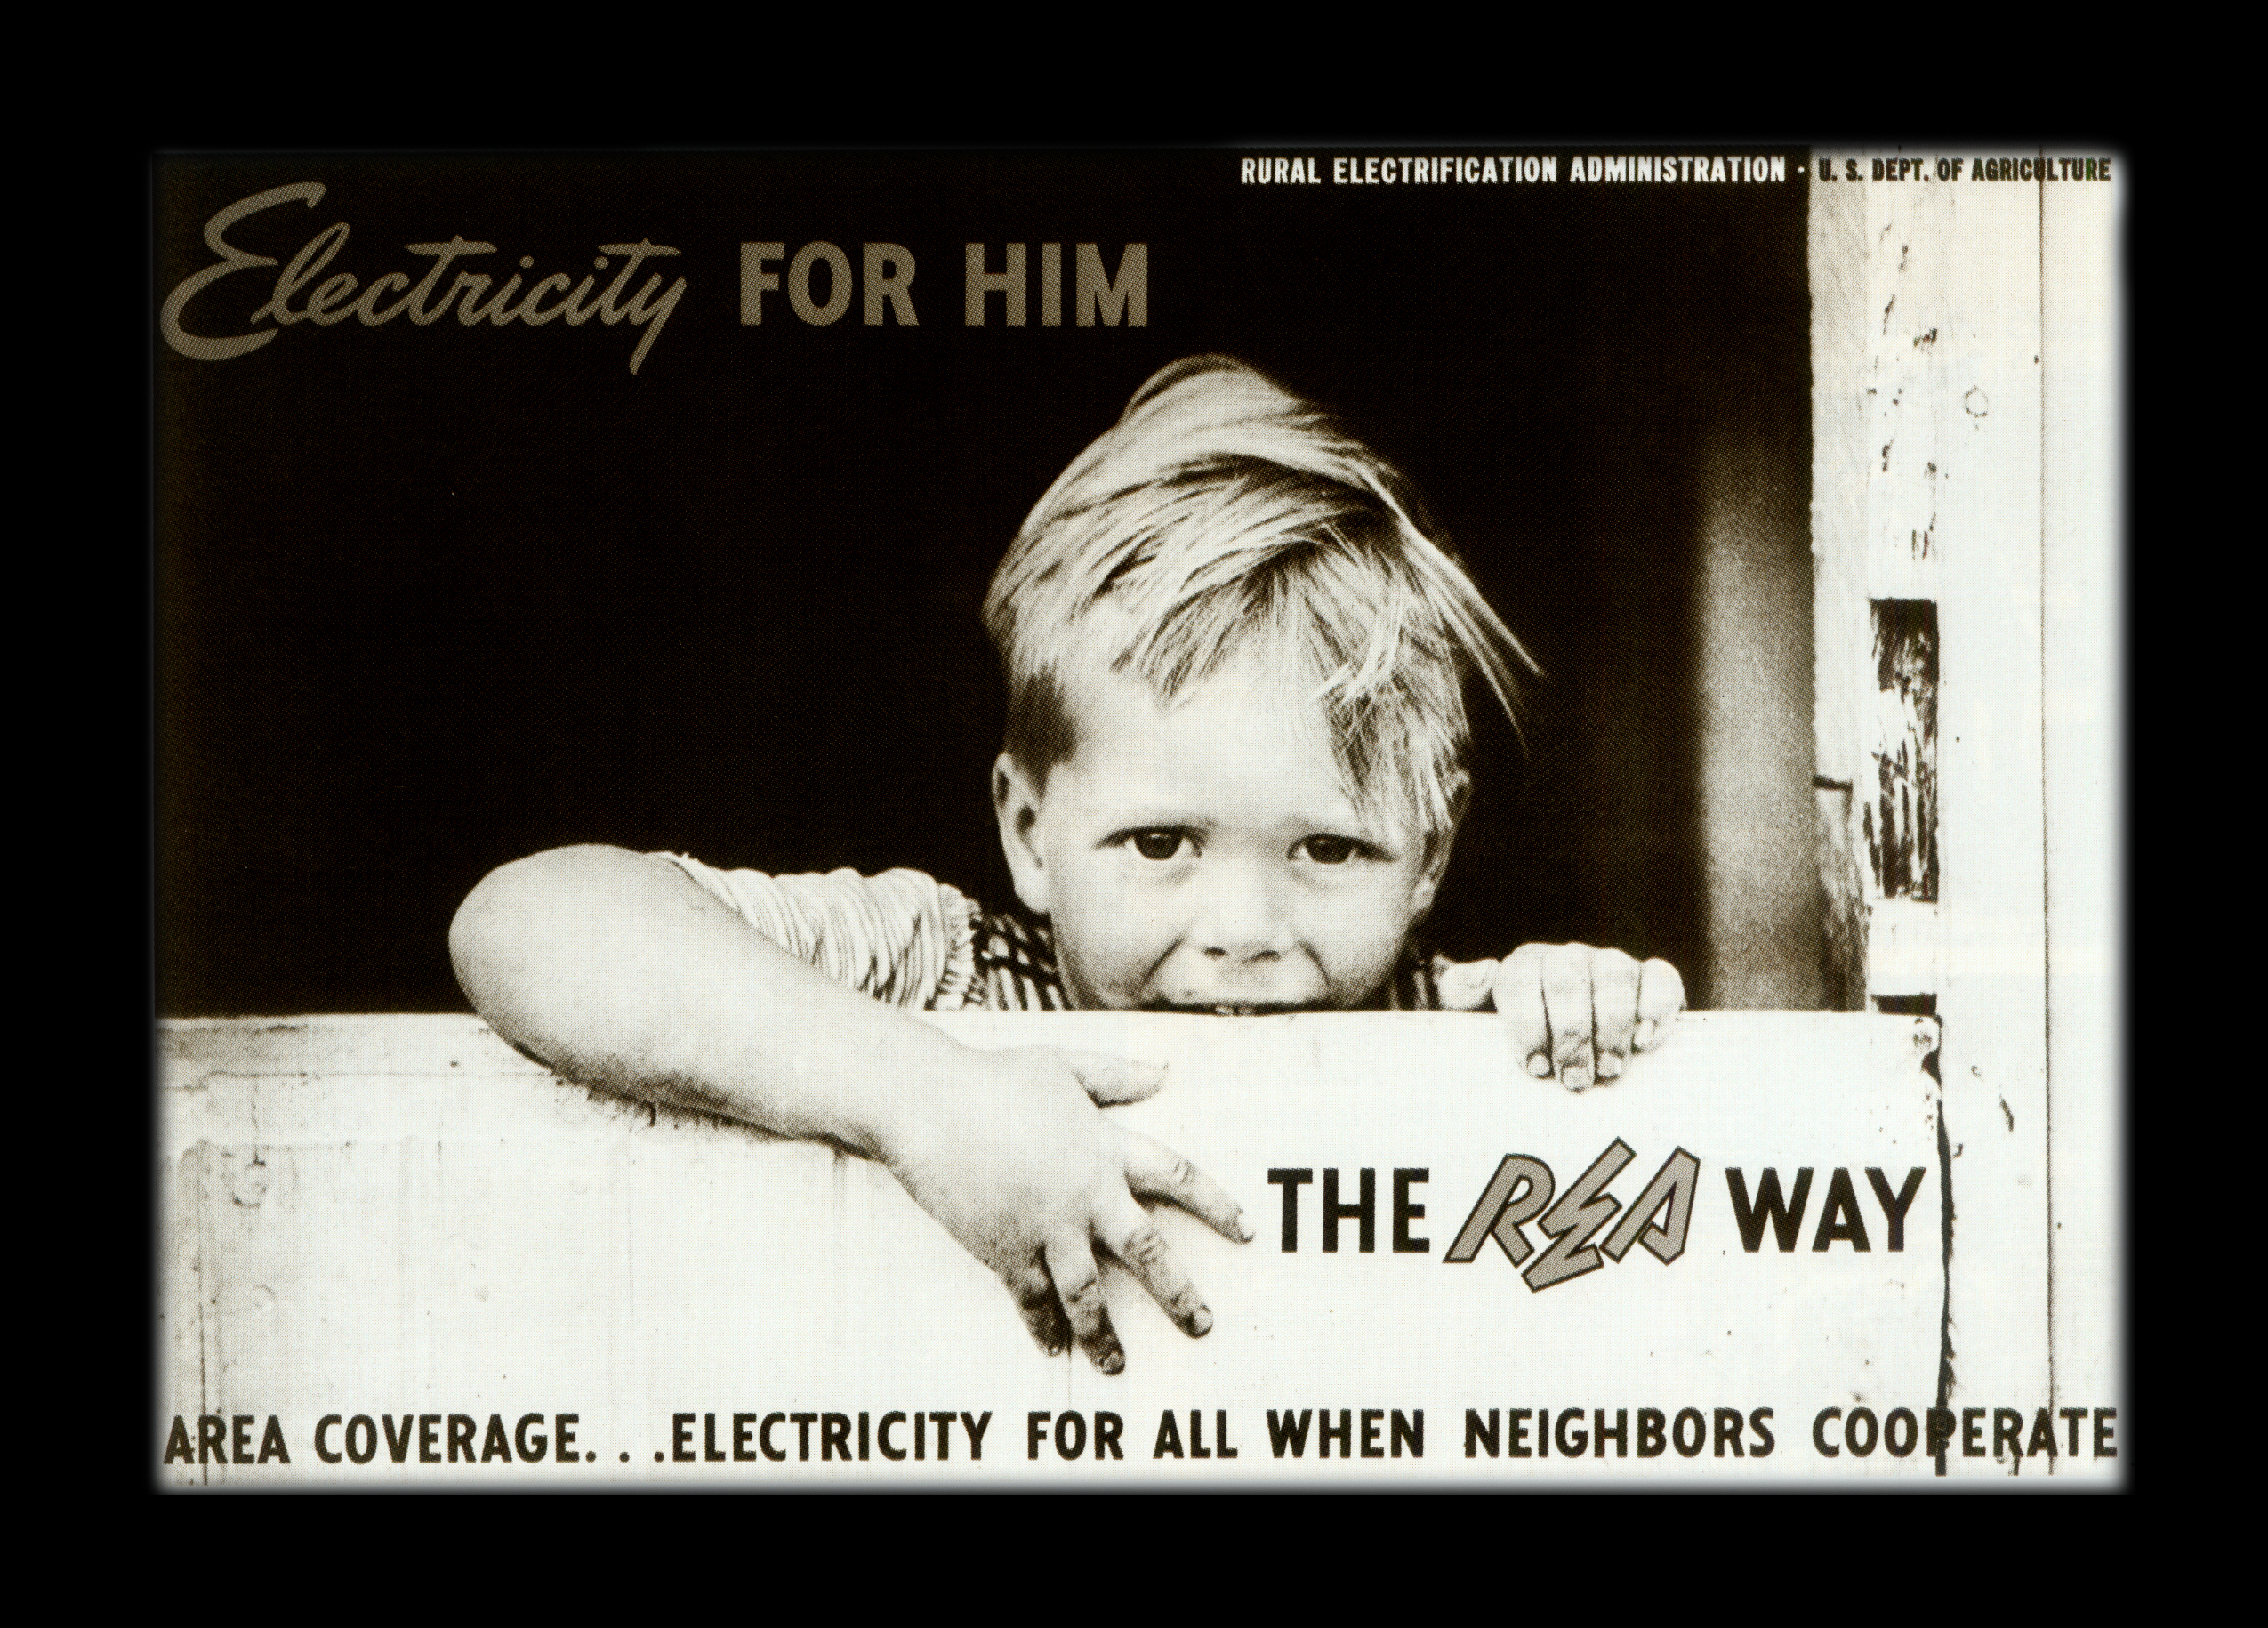 Image features 1930's advertisement of a young boy from rural America leaning on a barn fence.